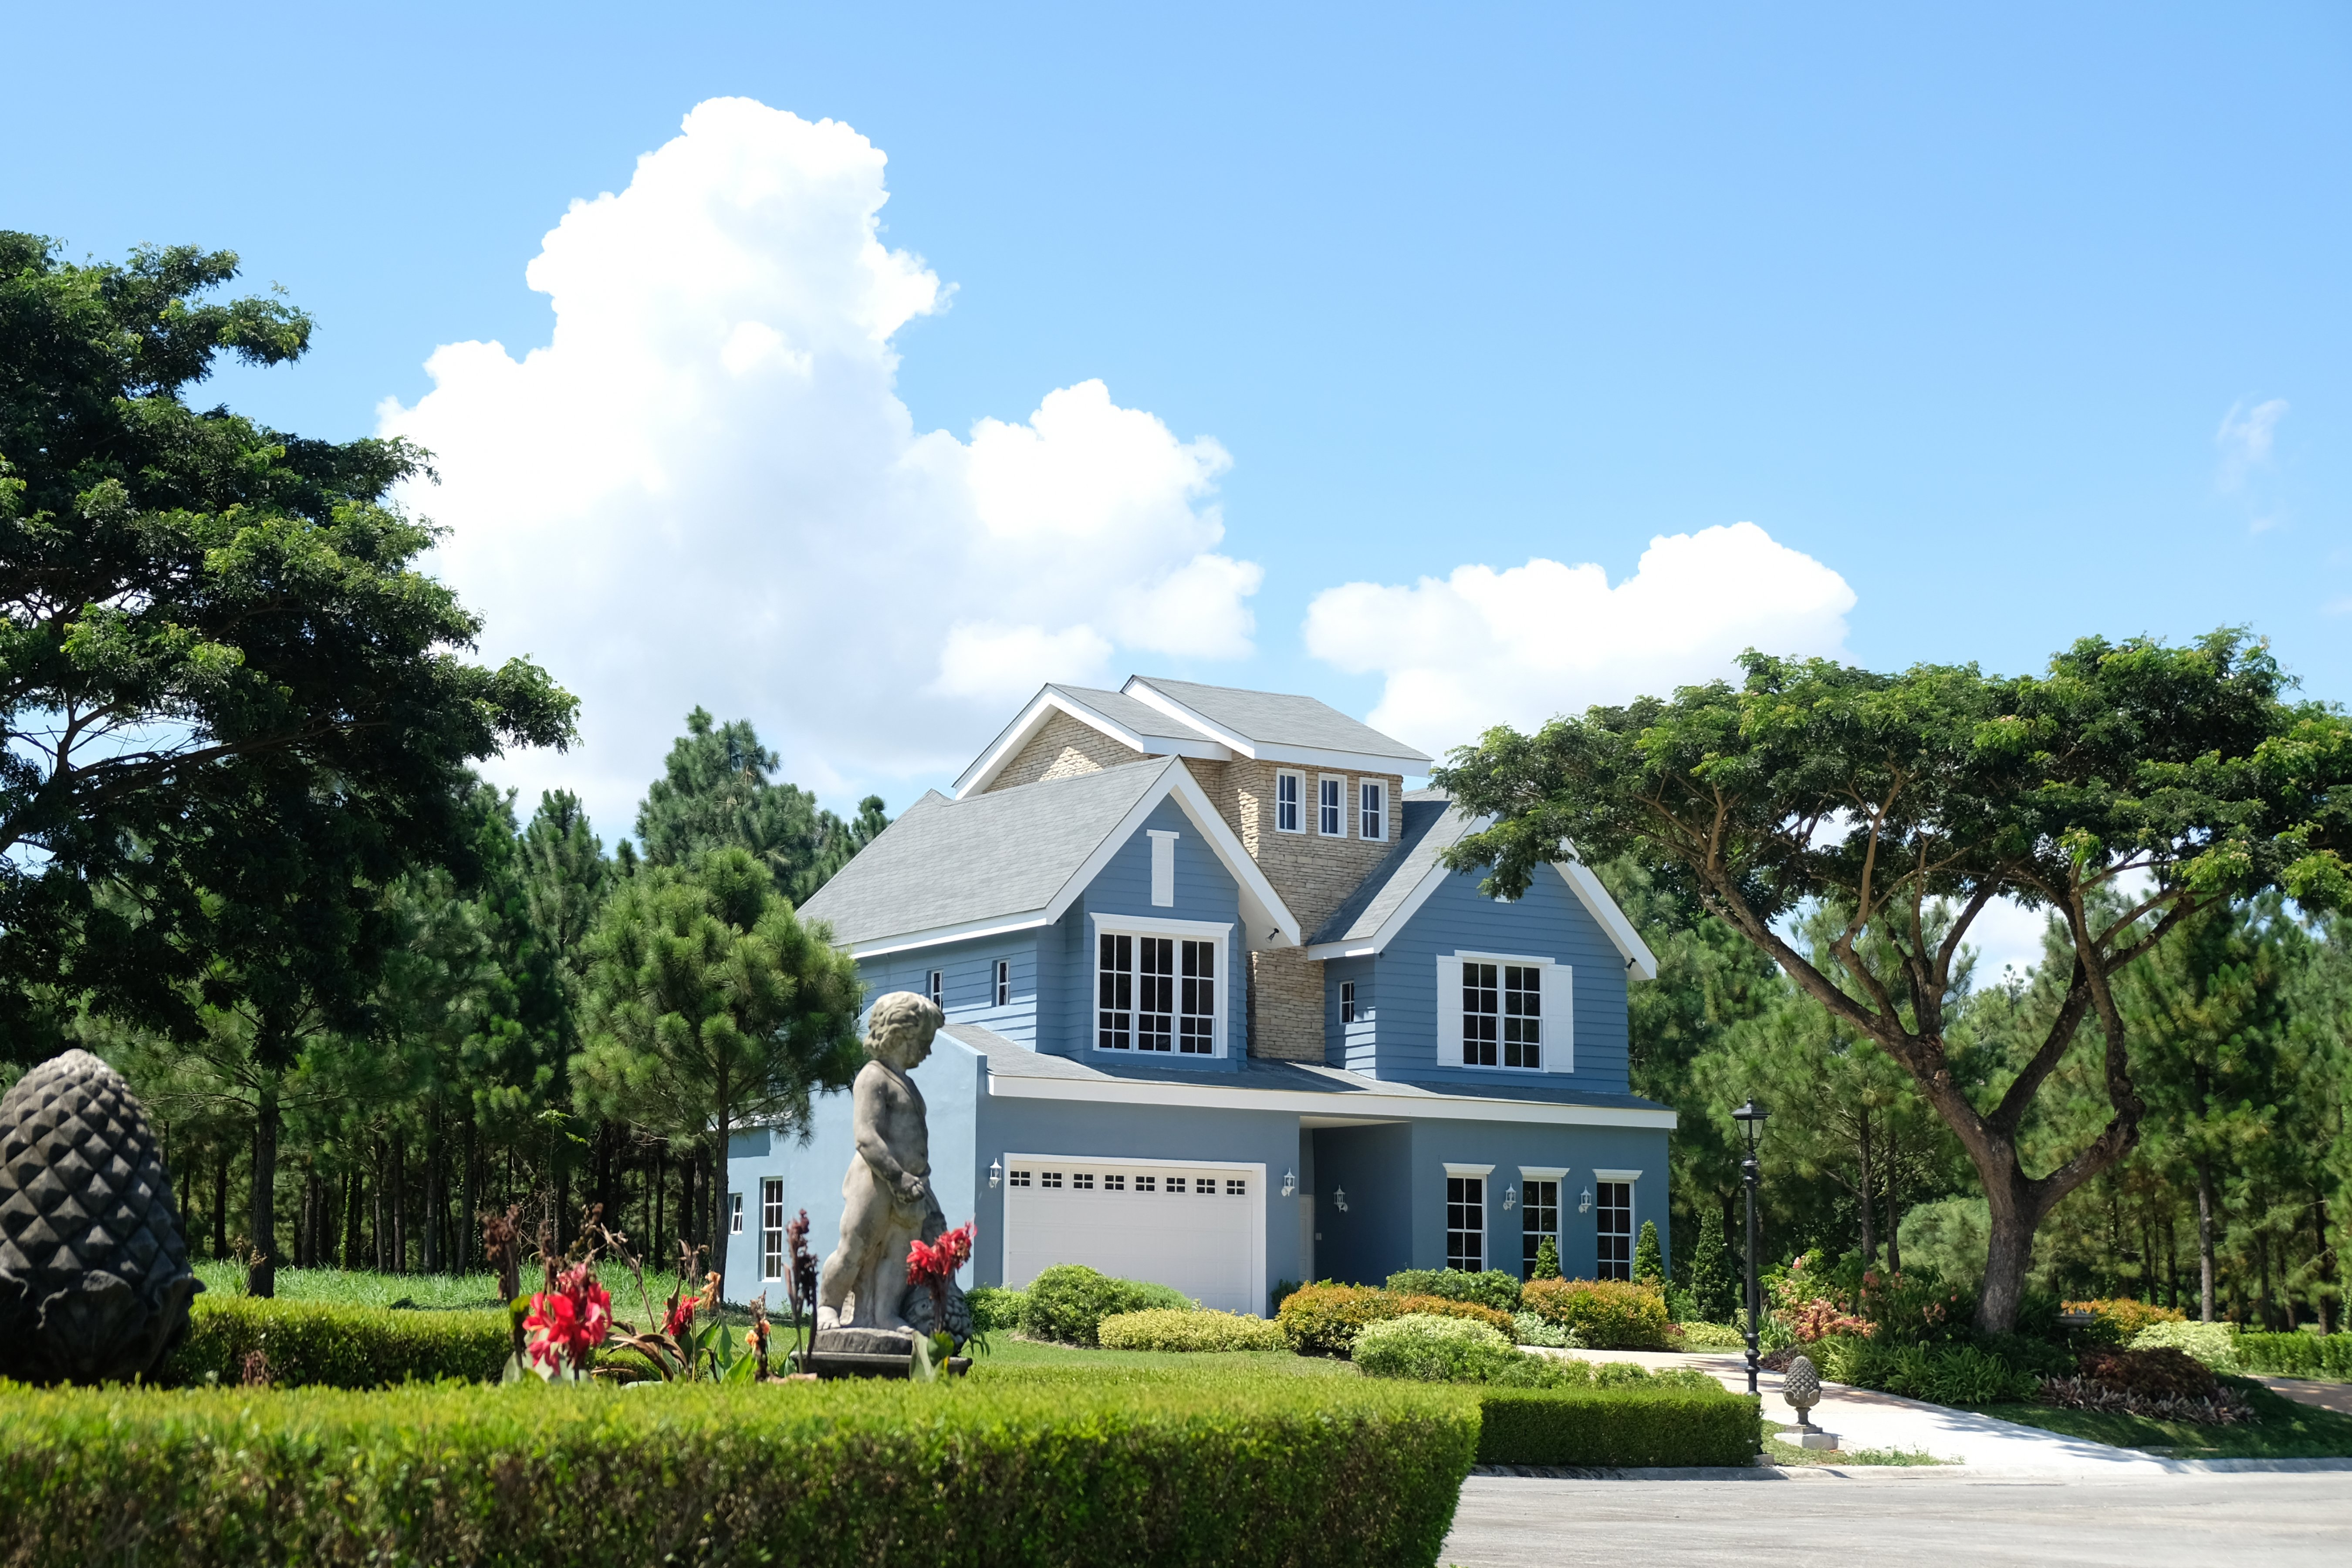 A wide shot featuring the facade of the Elliot Model House and its surrounding landscape | Brittany Sta. Rosa | Promenade | Luxury Homes by Brittany Corporation